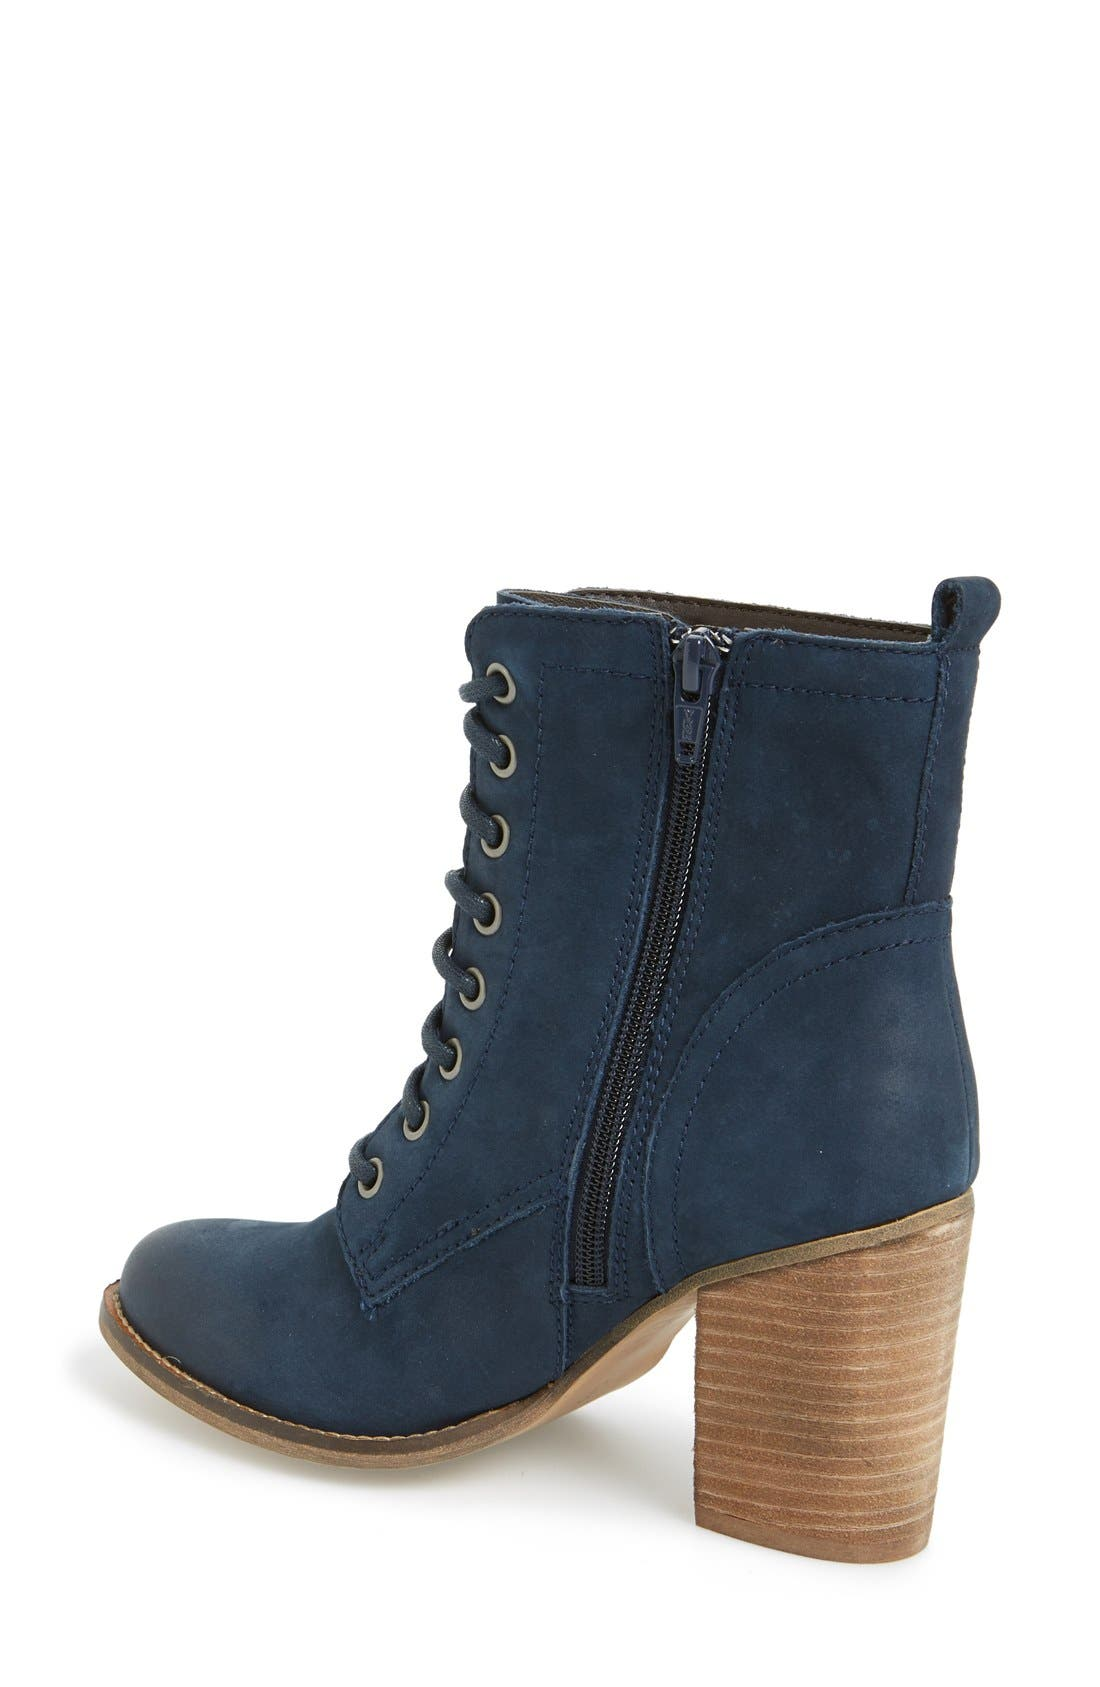 Alternate Image 2  - Steve Madden 'Lauuren' Lace-Up Bootie (Women)